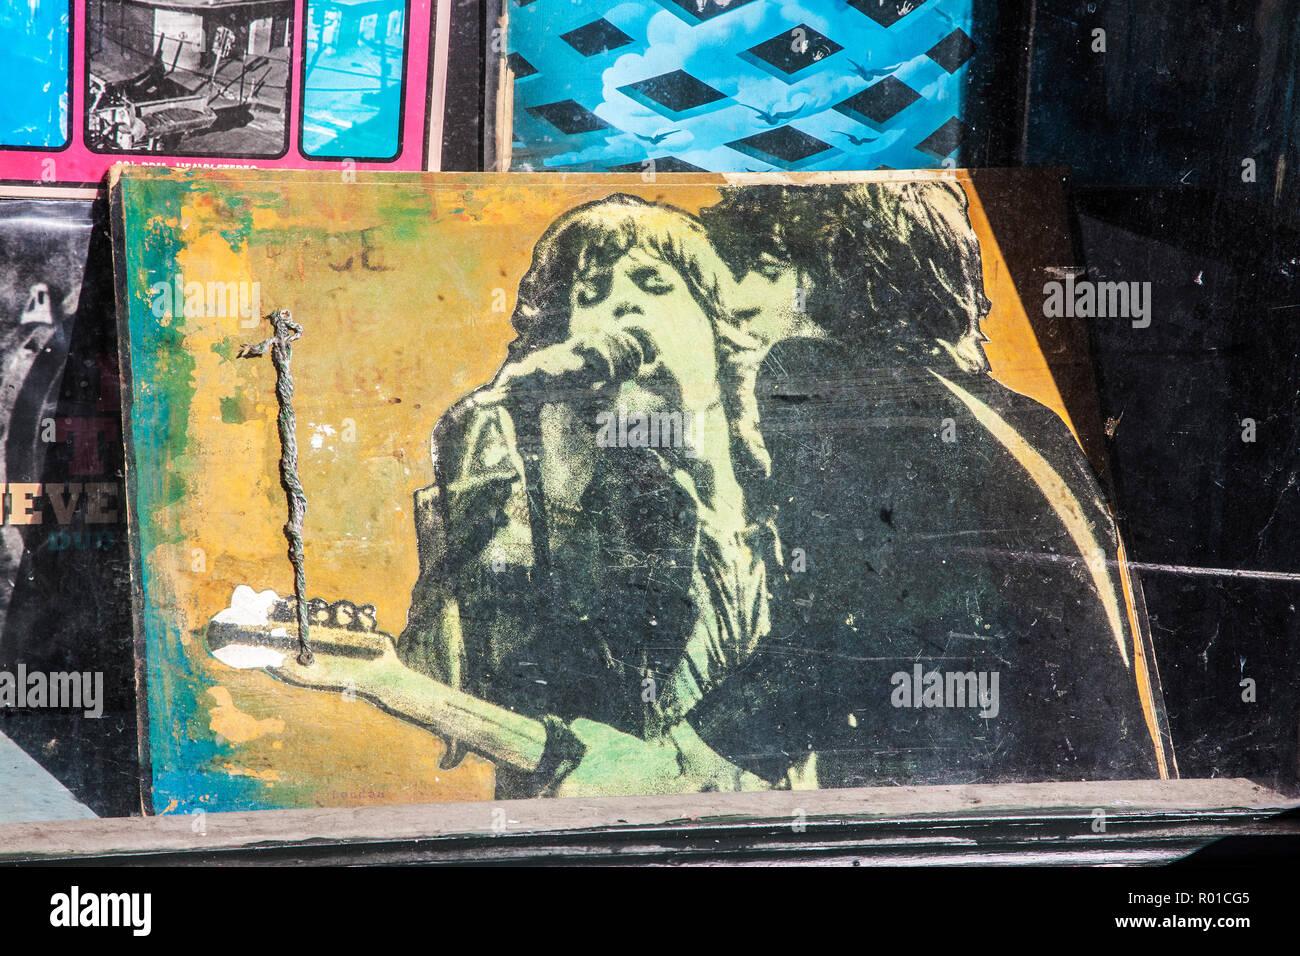 painting of keith richards and mick jagger,in window of second hand record shop, camden market, - Stock Image